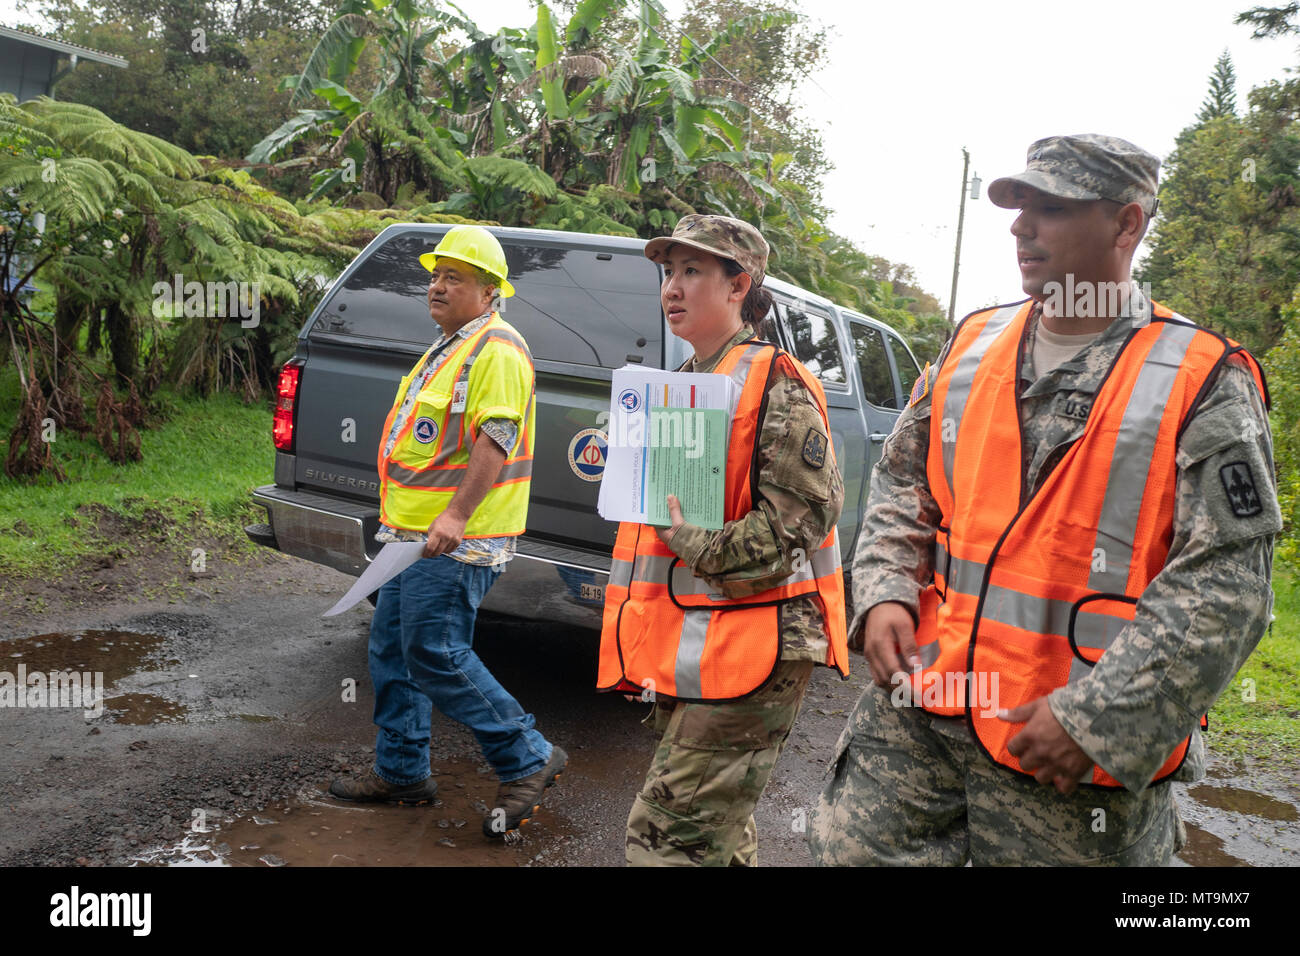 William Hanson, County of Hawaii Civil Defense administrative officer, Spc. Anyanee Sangchan and Sgt. Ambrose Leon, representatives of Task Force Hawaii, approach residents of the Volcano community May 17, 2018, at Upper Puna District, Hawaii. Teams went door-to-door to inform local residents of the heightened risks, due to the ongoing volcanic activity in the area. (U.S. Air National Guard photo by Senior Airman John Linzmeier) - Stock Image